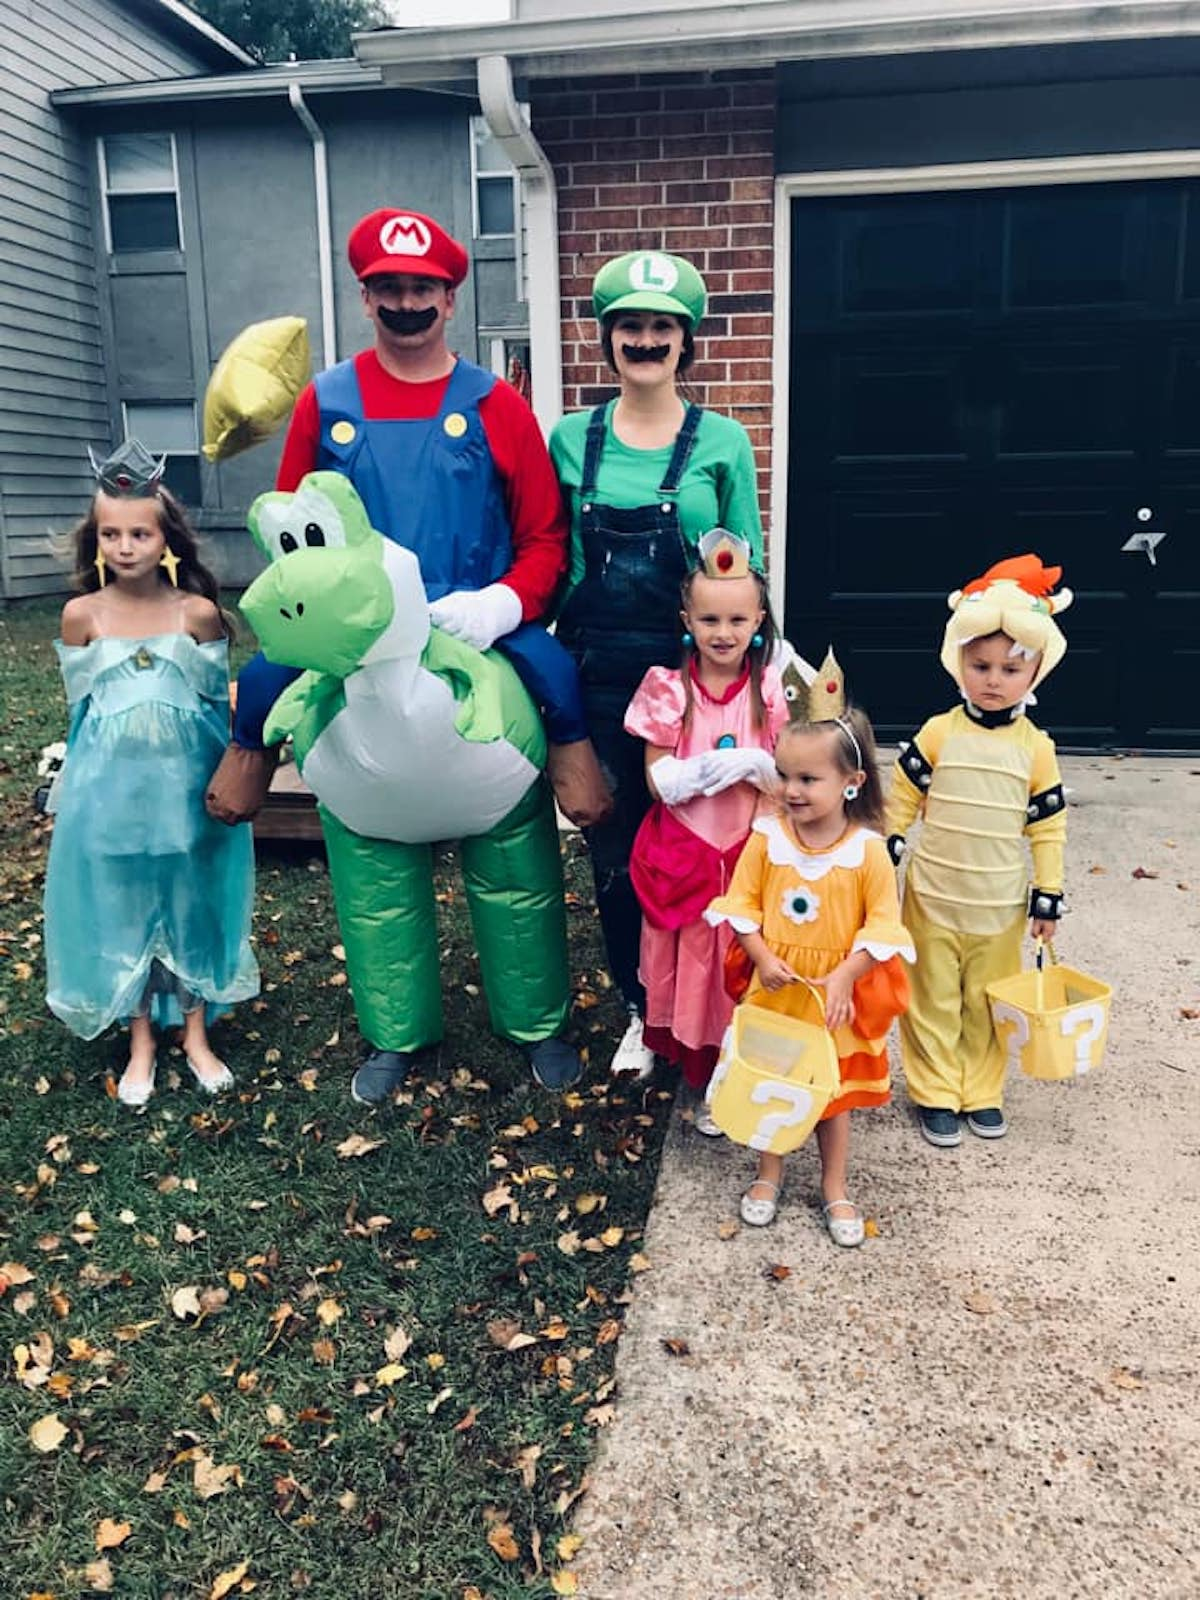 Family wearing Super Mario costumes smile in front yard.